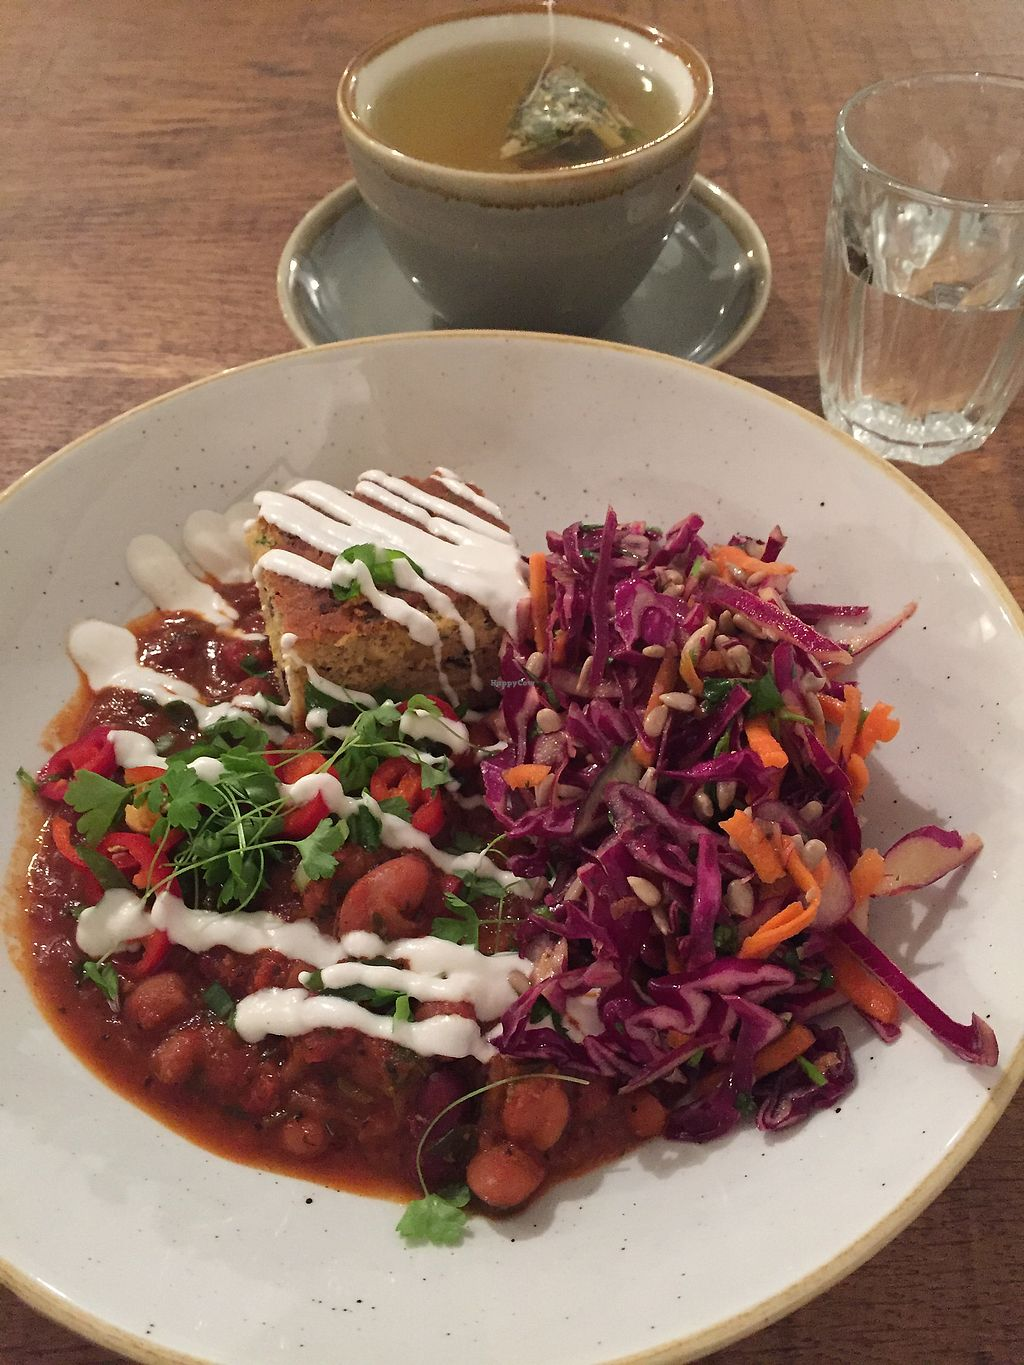 "Photo of CLOSED: Deliciously Ella - Seymour  by <a href=""/members/profile/SiljeKristiansen"">SiljeKristiansen</a> <br/>Five bean chili - so good!! <br/> September 27, 2017  - <a href='/contact/abuse/image/69750/309028'>Report</a>"